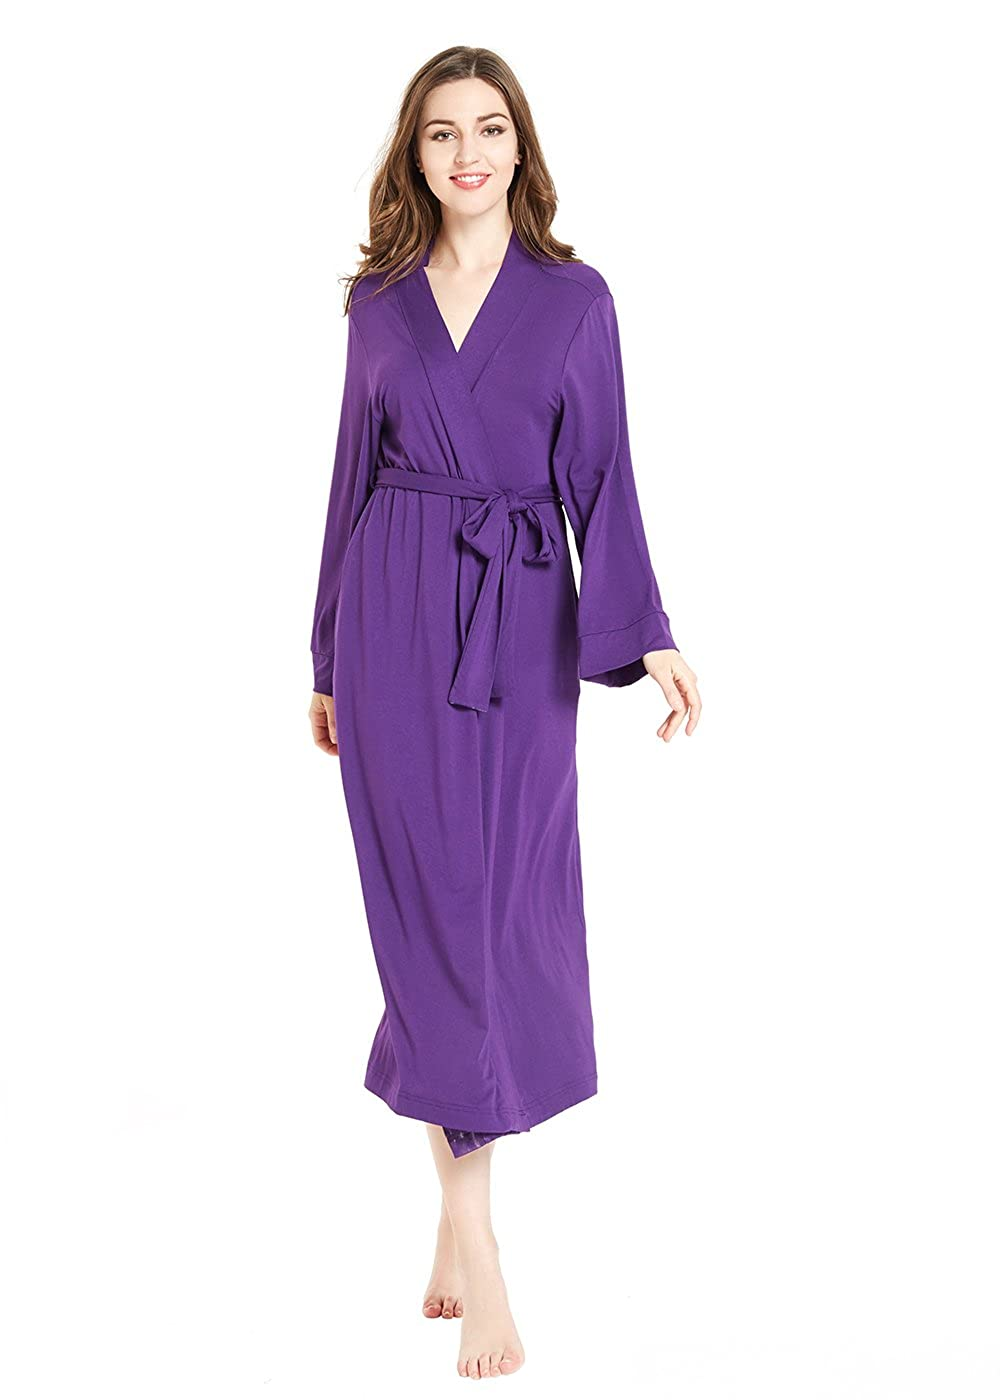 Purple lantisan Silky Satin Robe Women, Long Bathrobe Full Length VNeck Dressing Gown